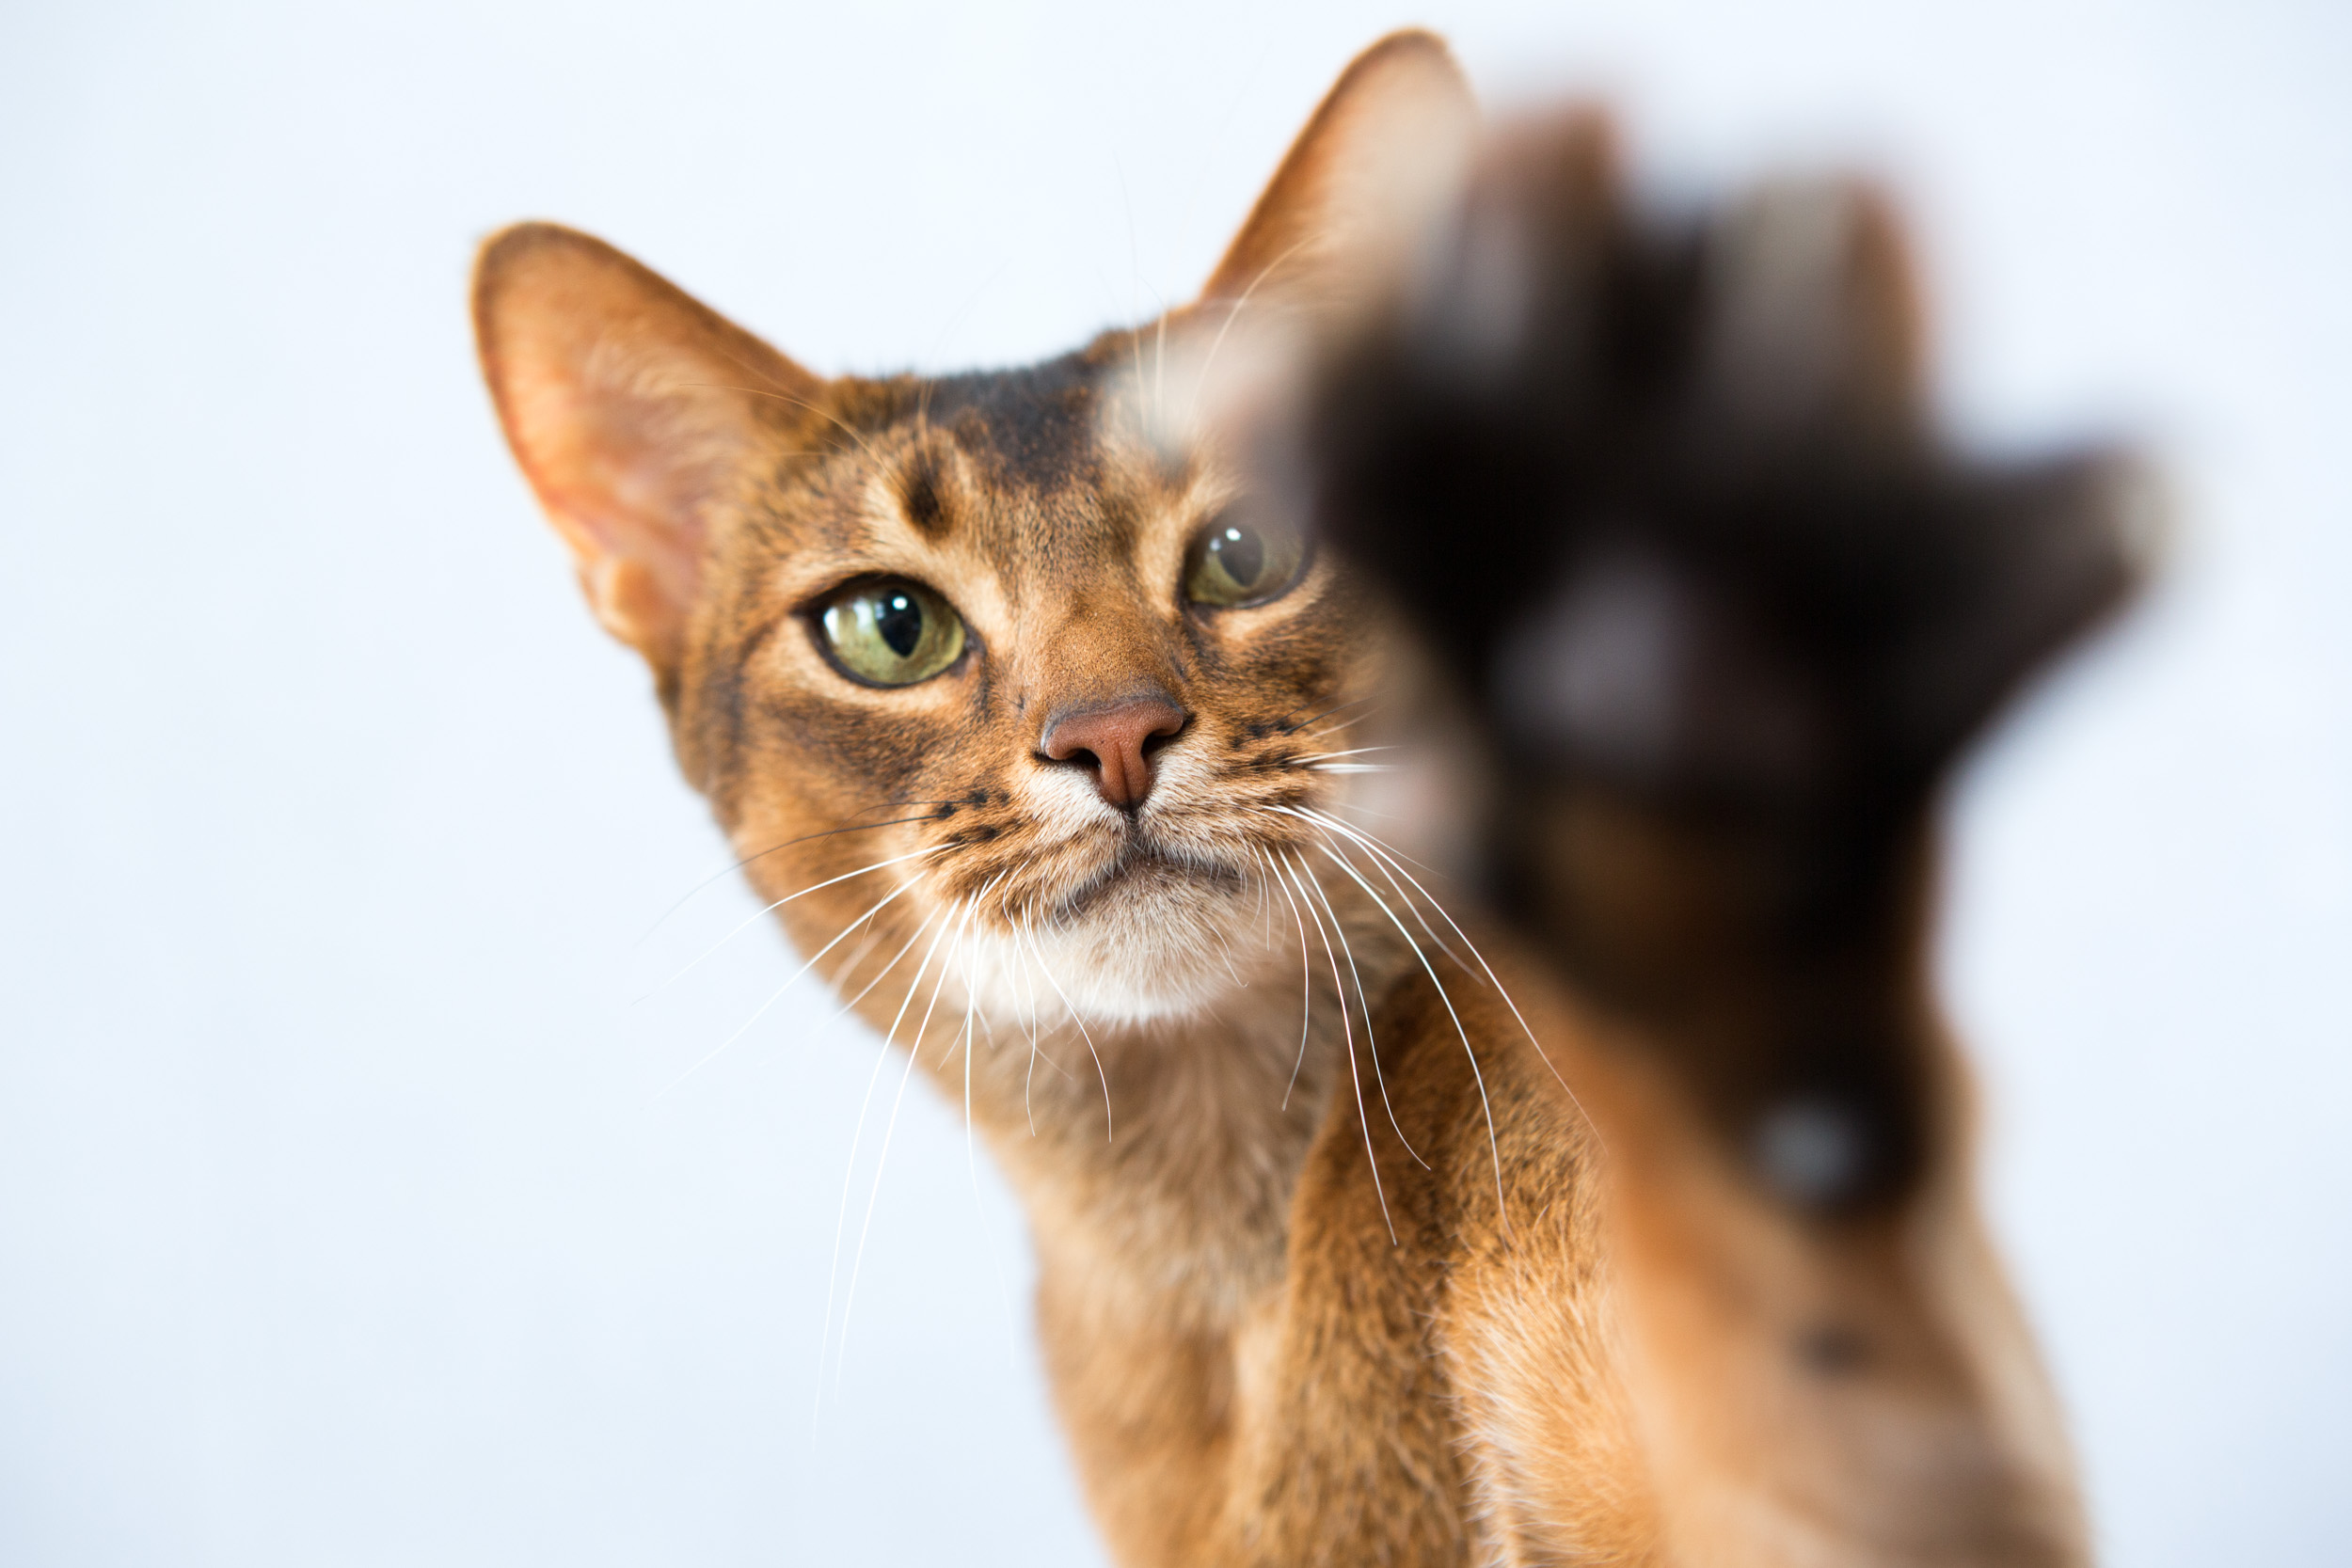 Pet Studio Photography | Cat with Paw Raised by Mark Rogers